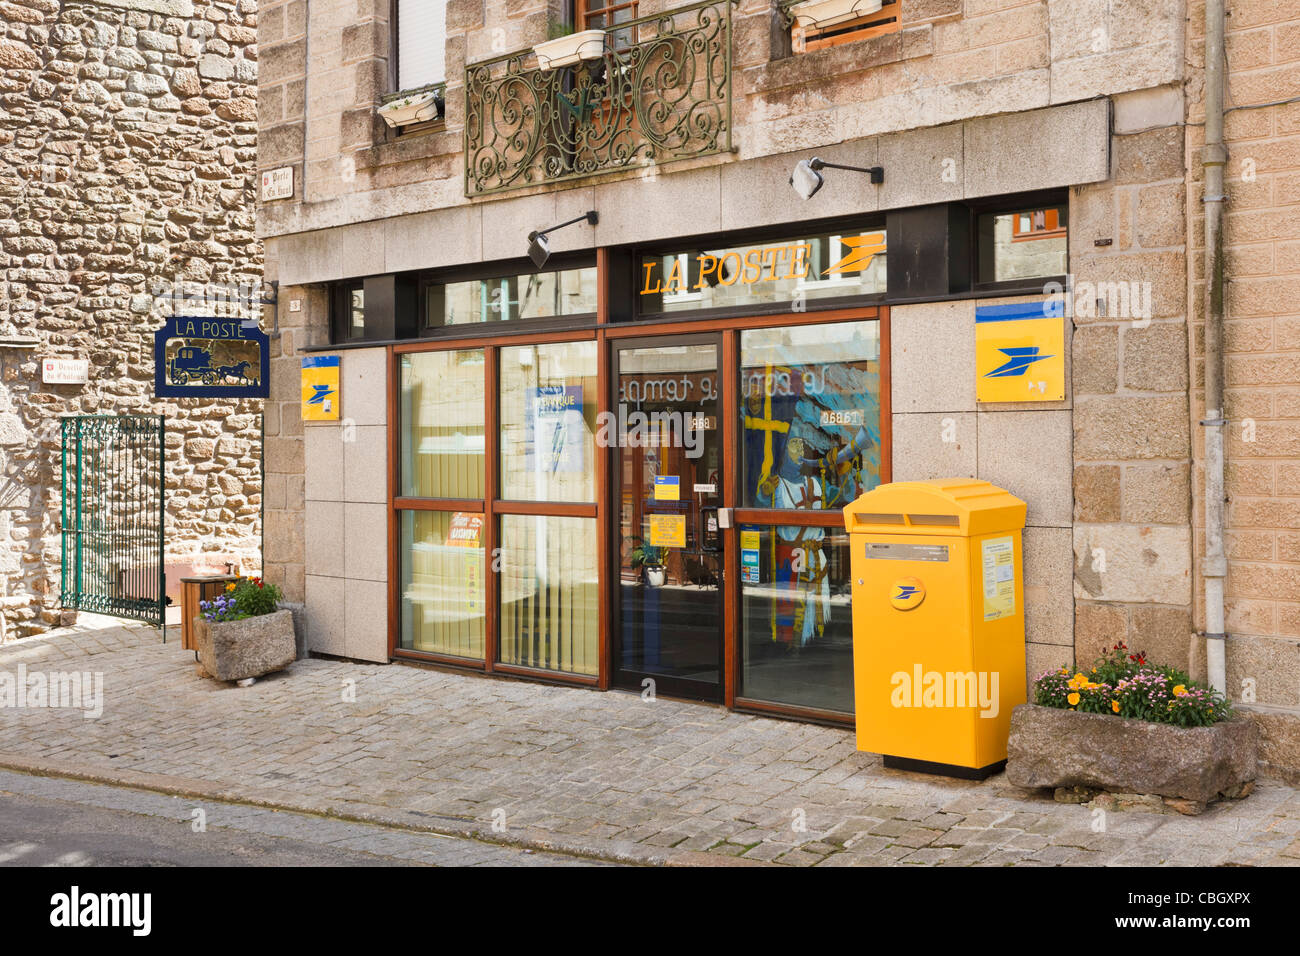 La poste bureau de poste france banque dimages photo stock